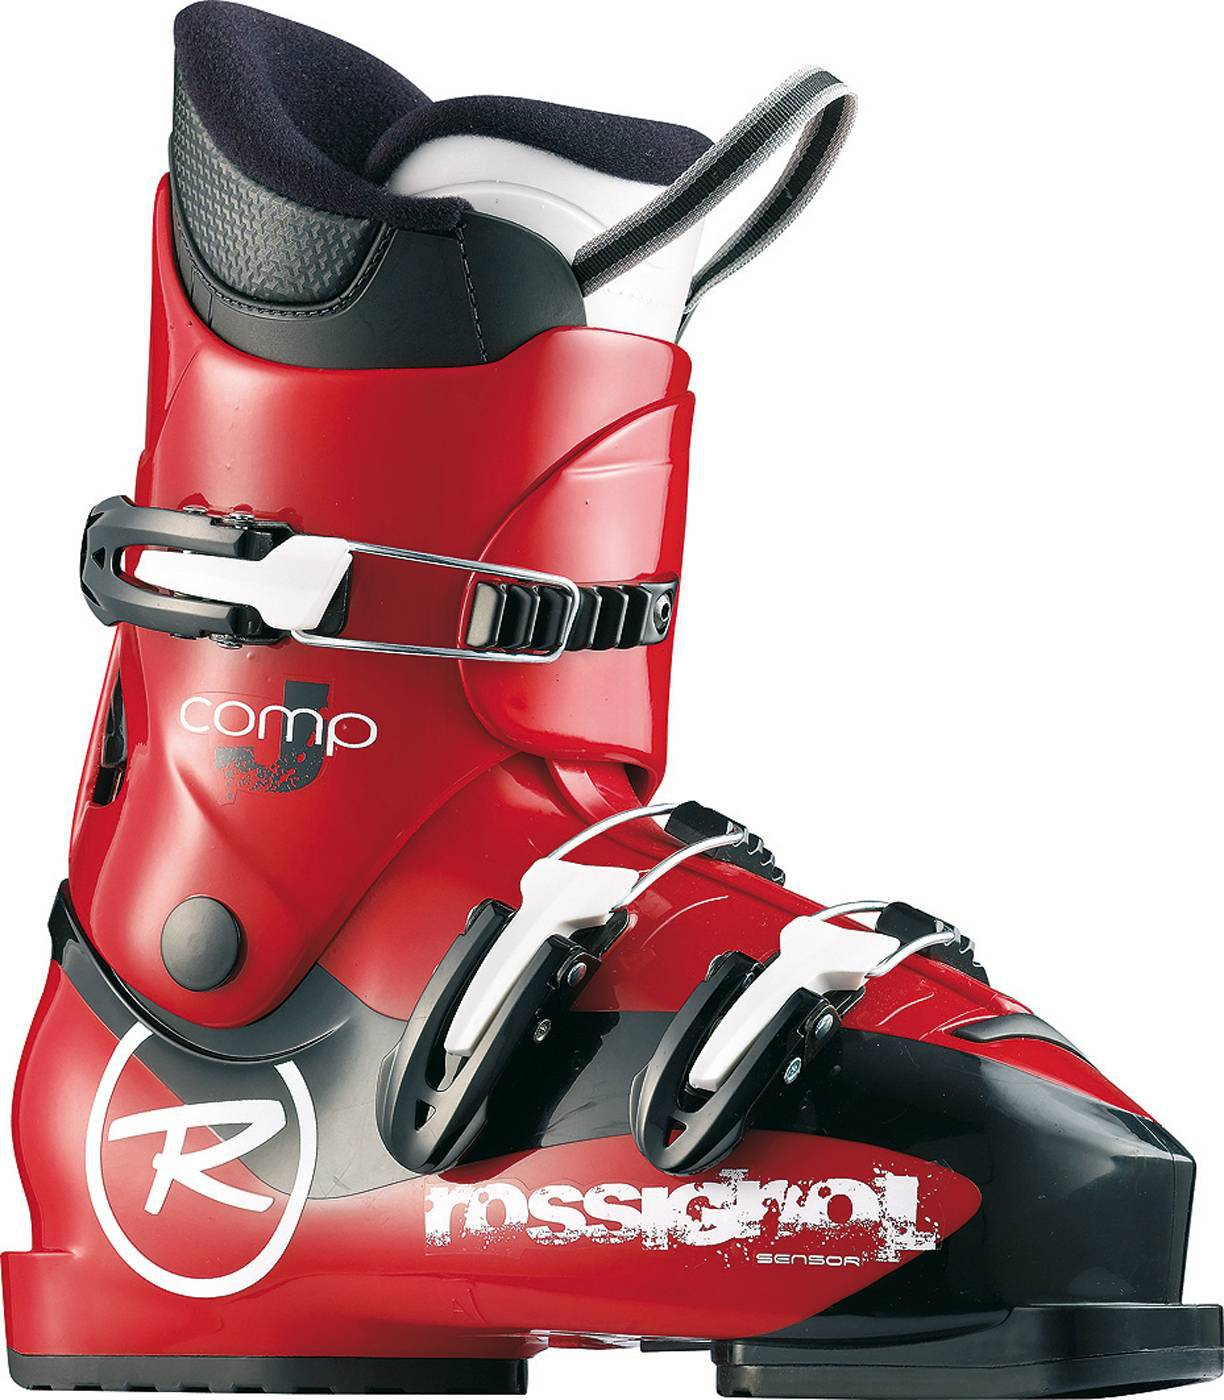 Boty Rossignol Comp J3 Red 32 2012